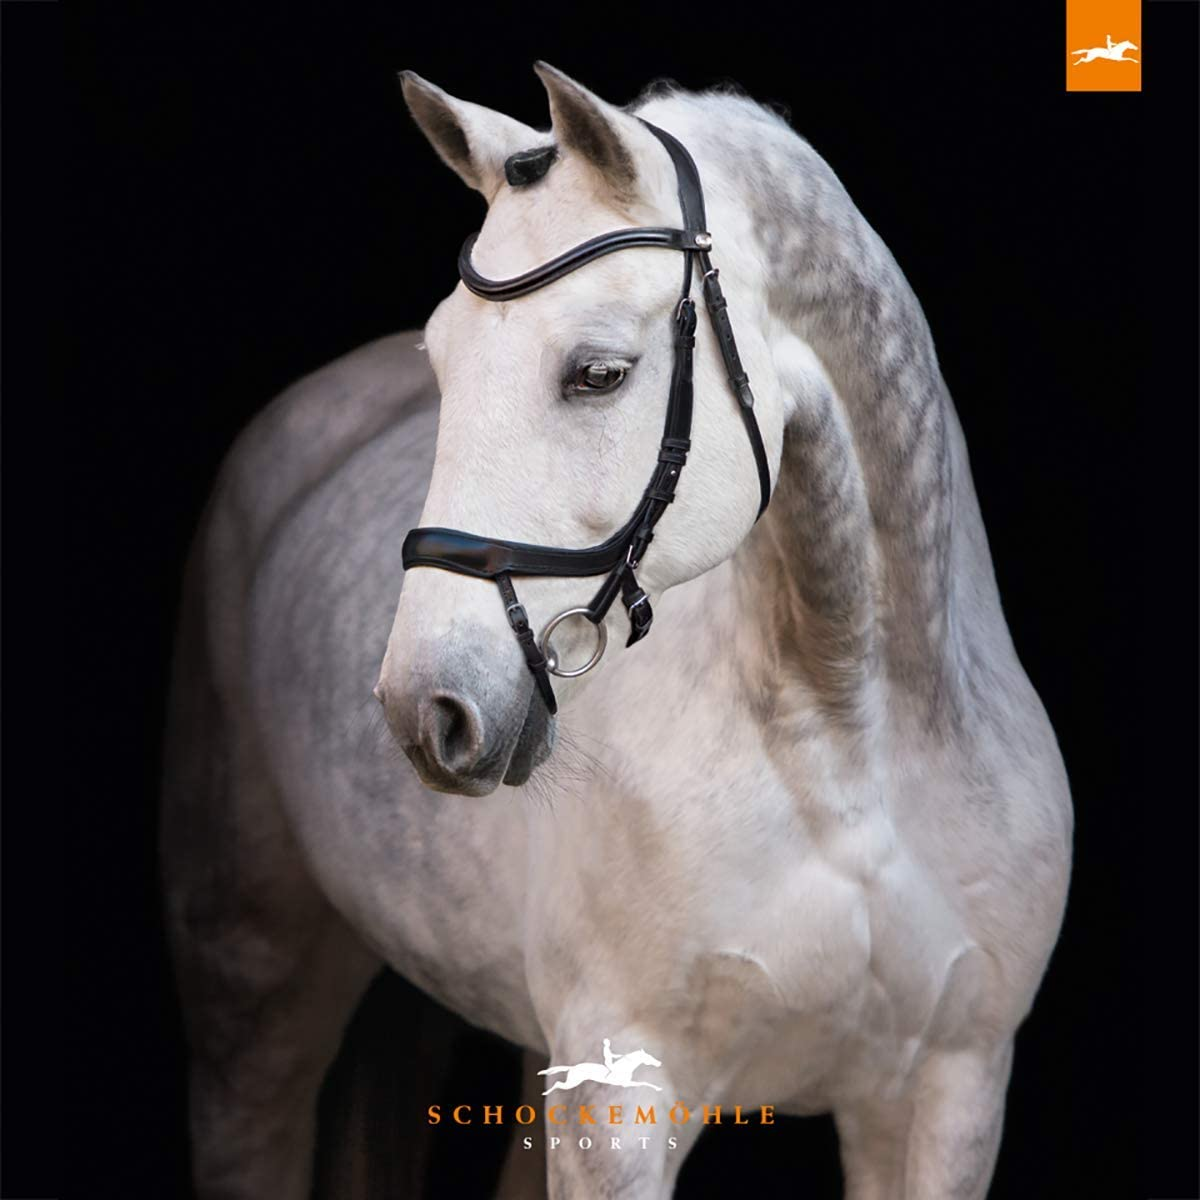 Schockemoehle Sports Equitus Alpha Anatomic Bridle for Dressage and Show Jumping